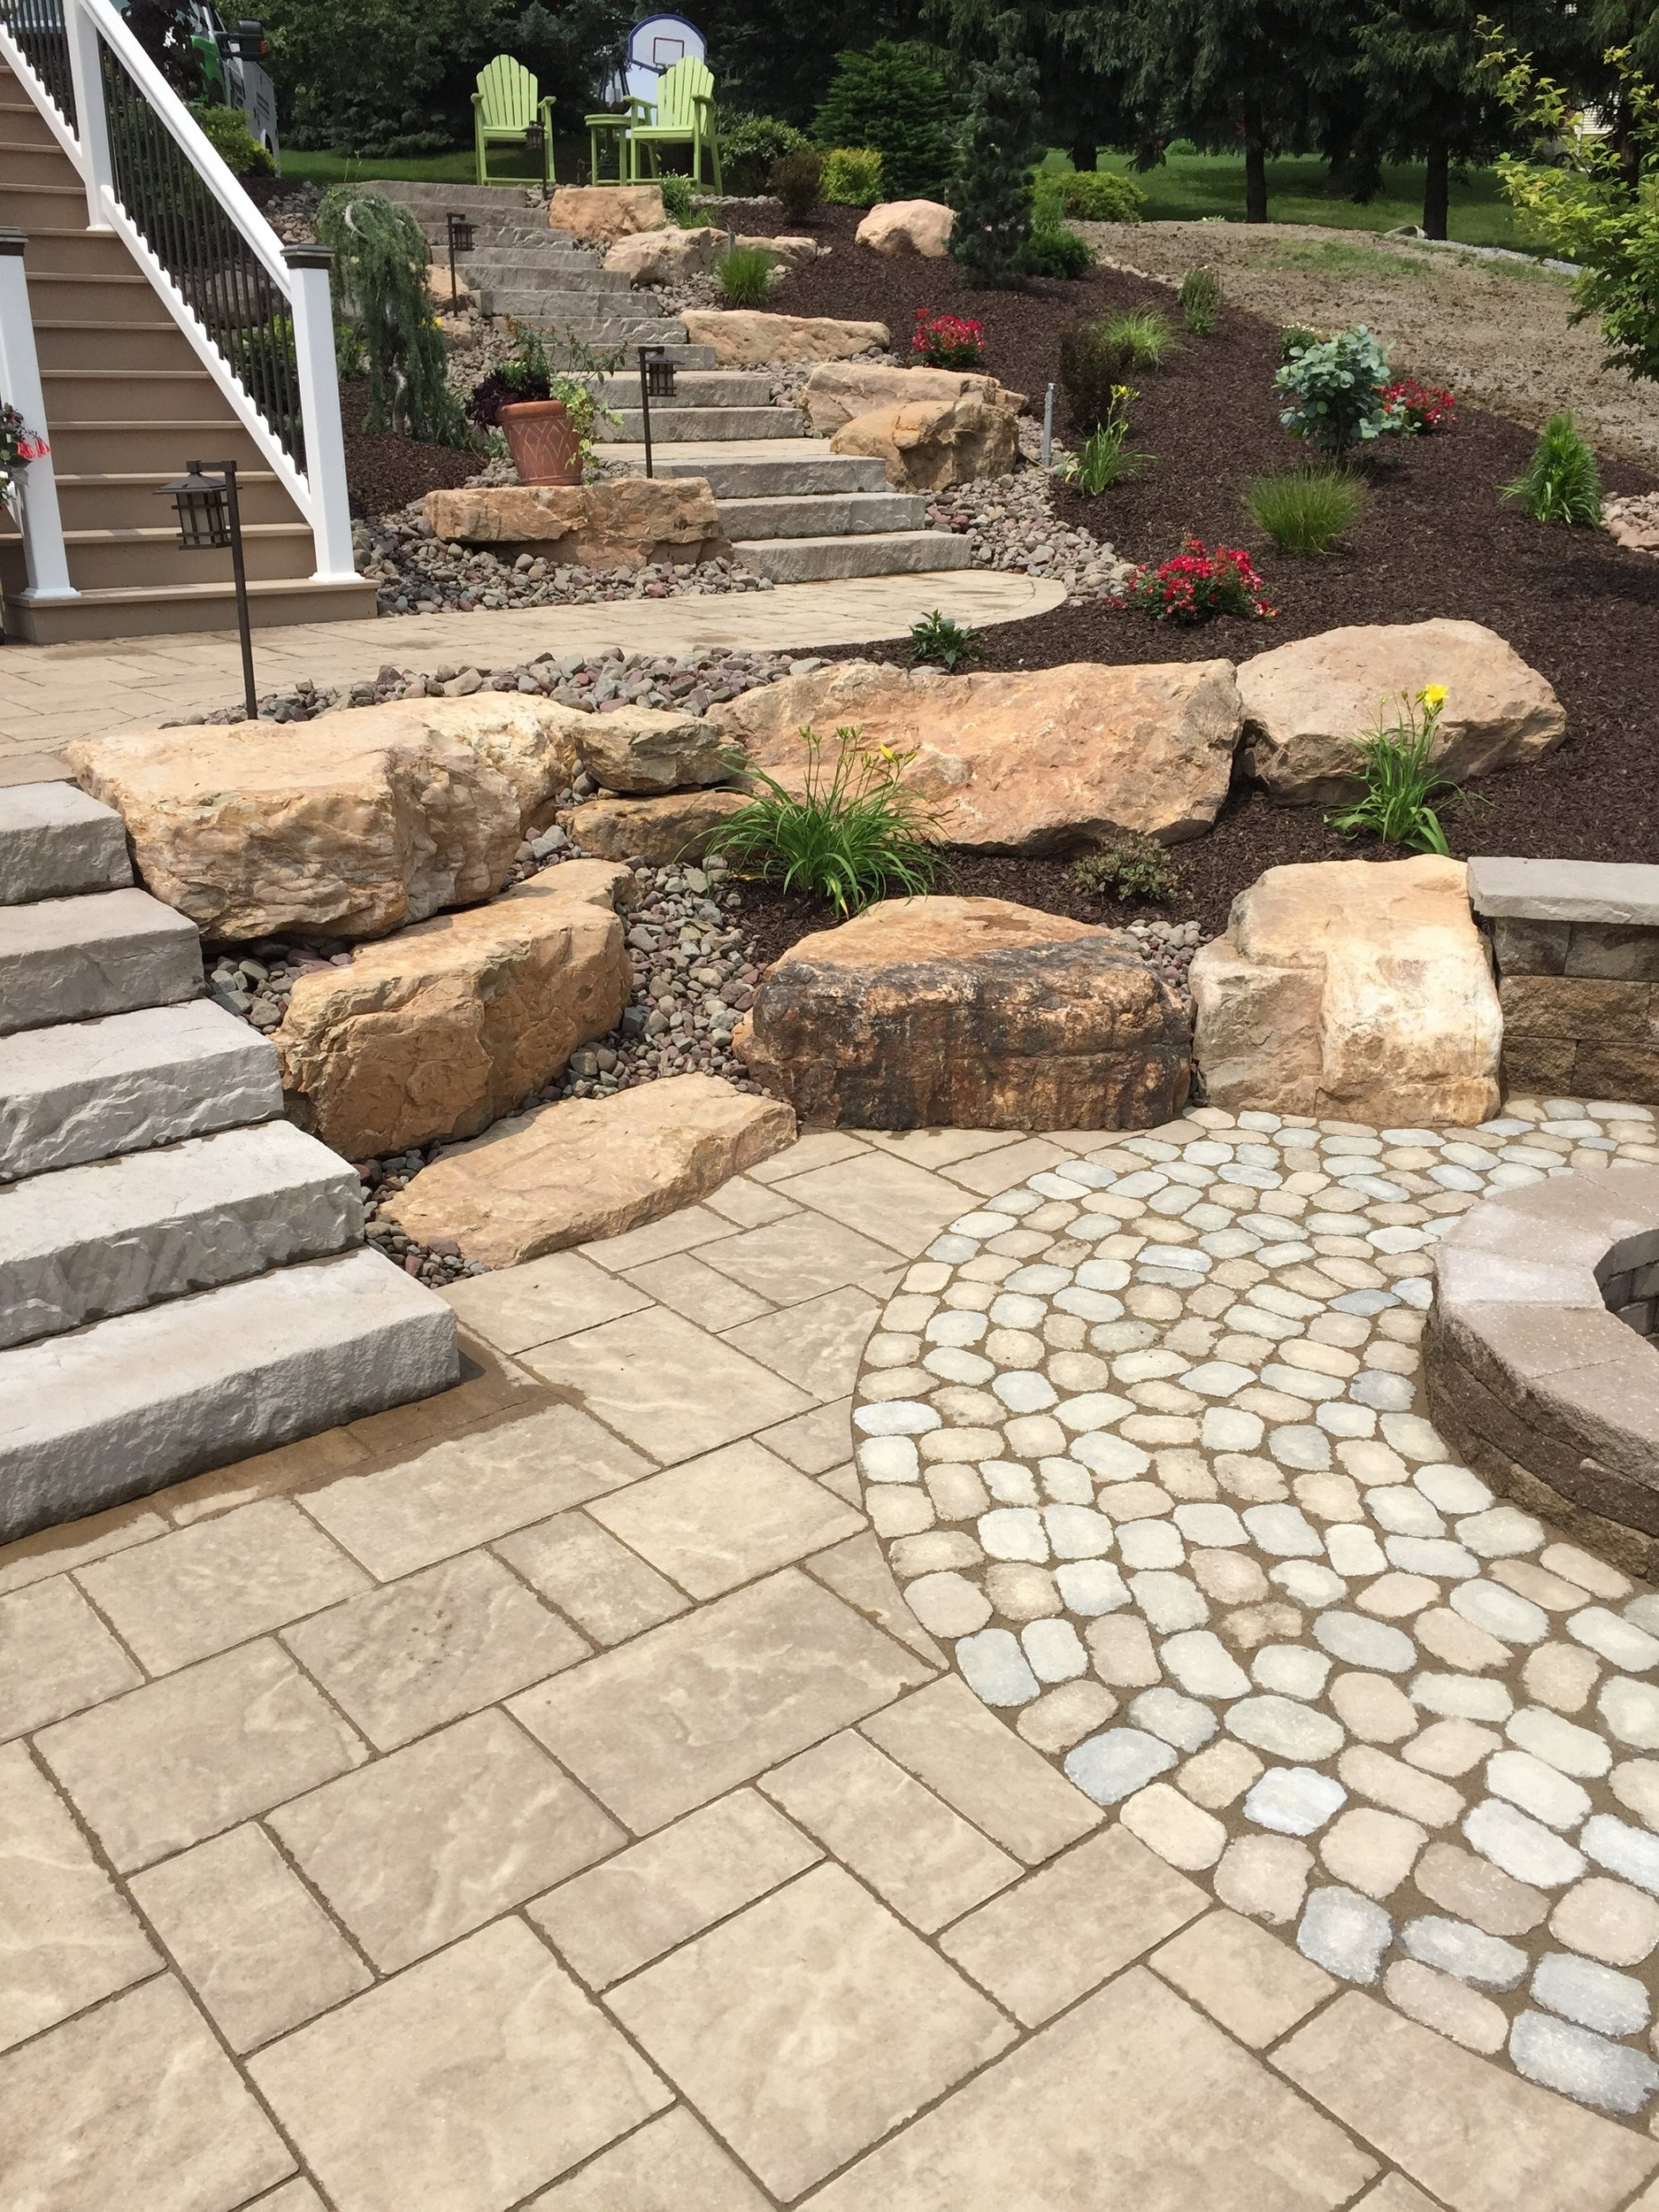 Expert landscape contractor inSouth Whitehall, PA